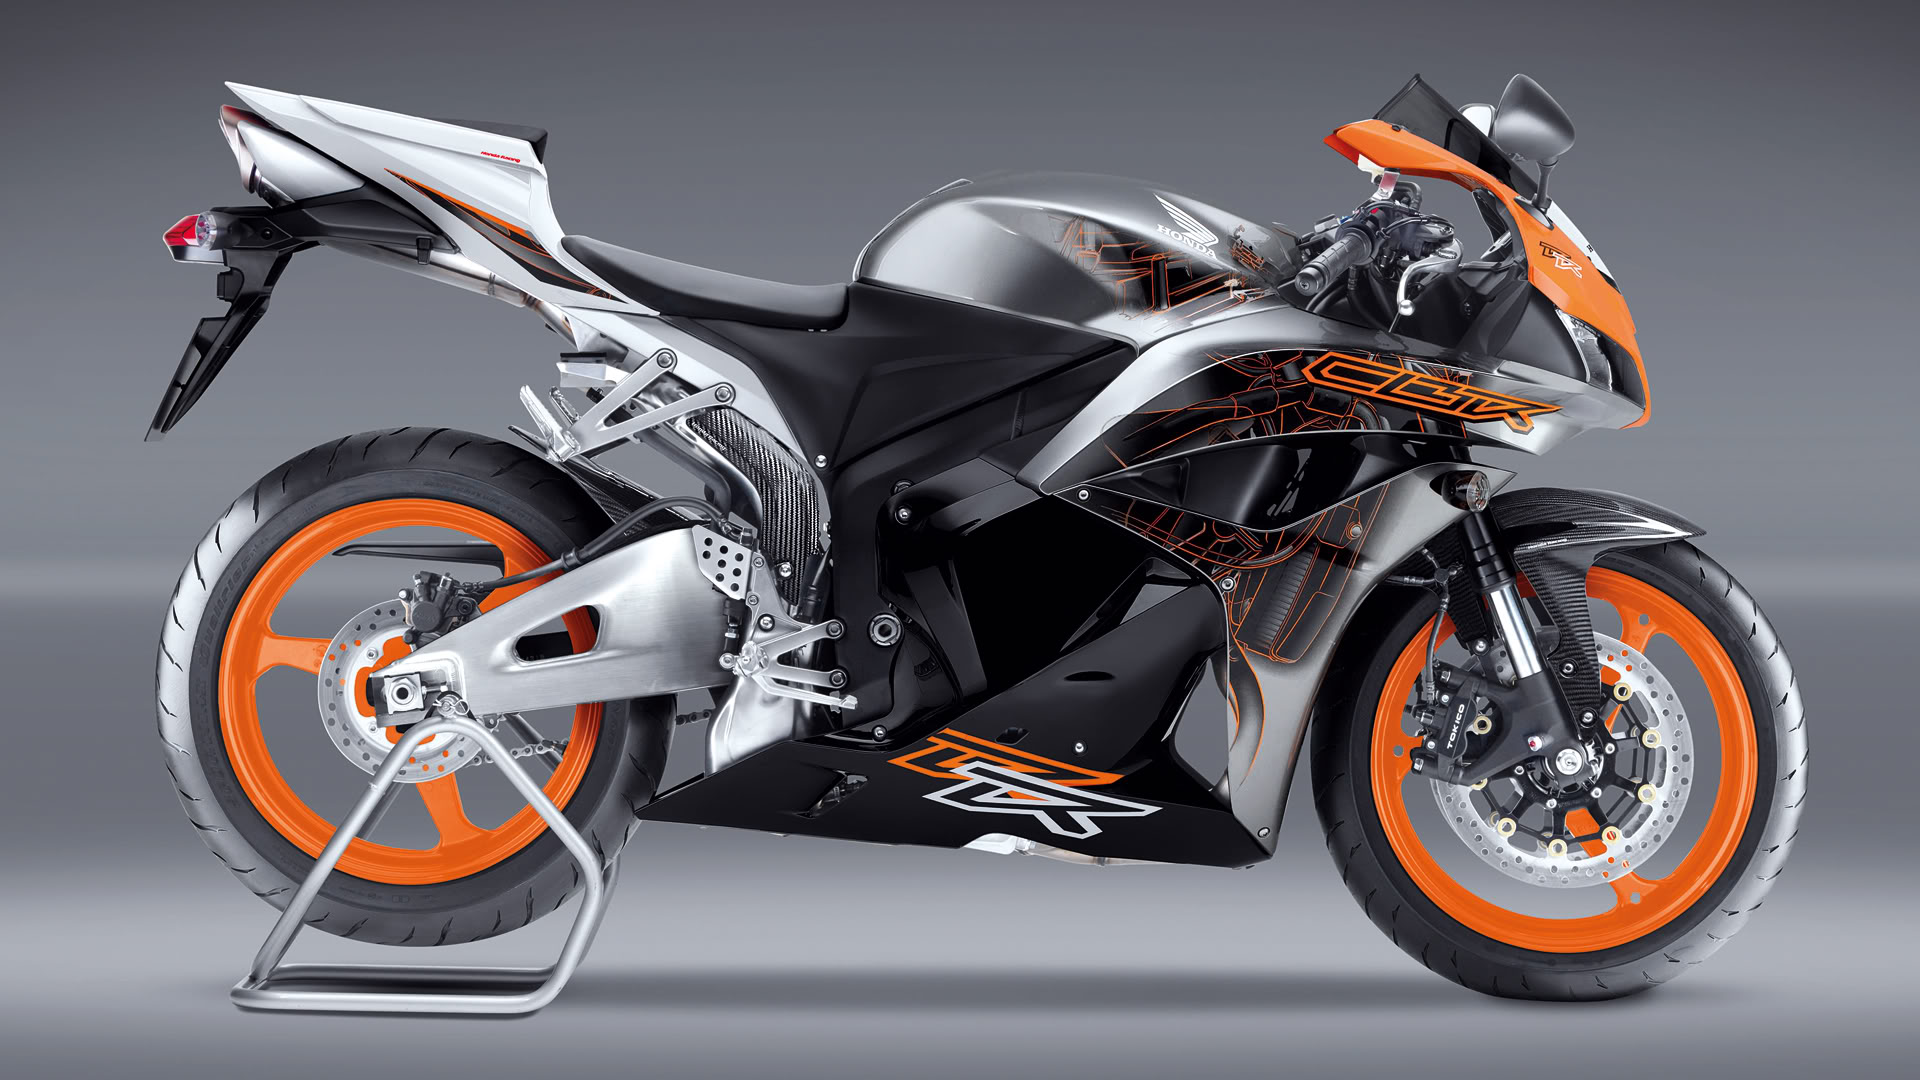 honda cbr600rr hd wallpaper background image 1920x1080. Black Bedroom Furniture Sets. Home Design Ideas